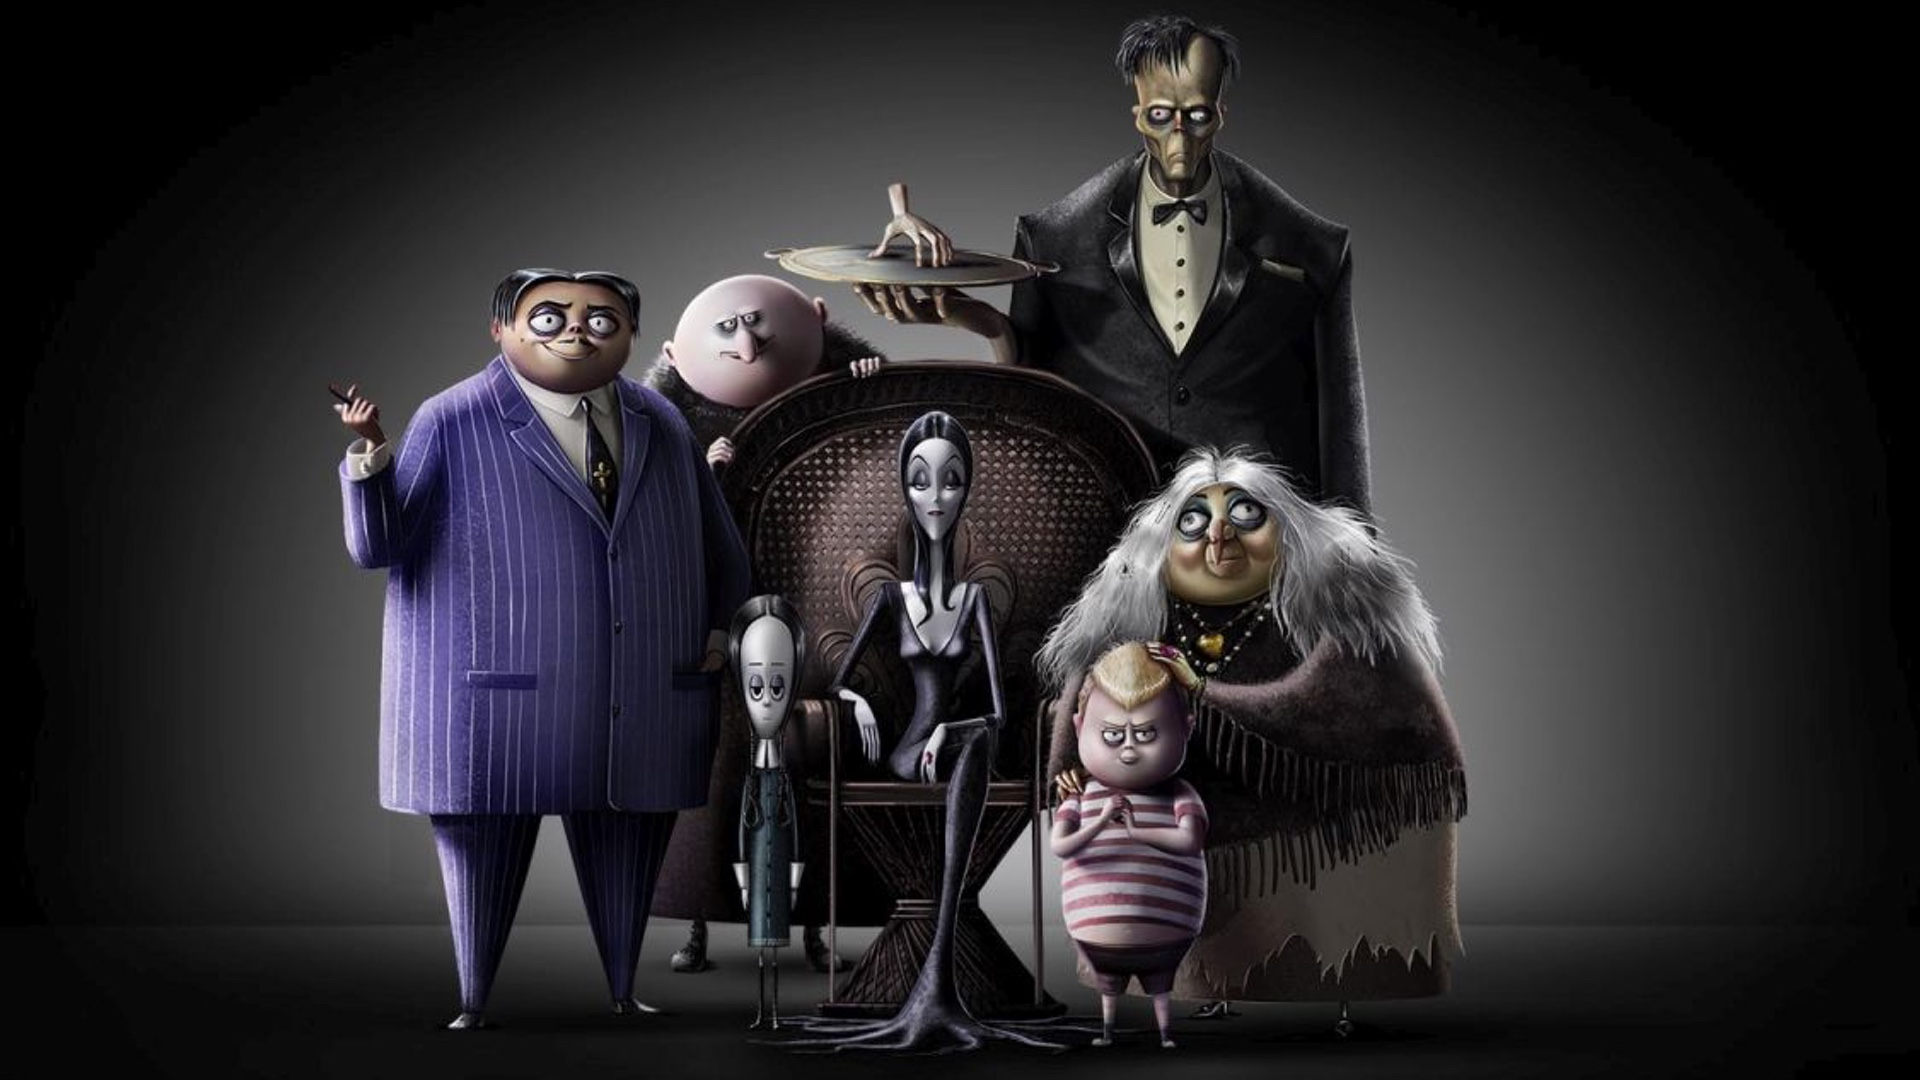 first-look-at-new-animated-the-addams-family-movie-story-details-and-full-all-star-cast-revealed-social.jpg